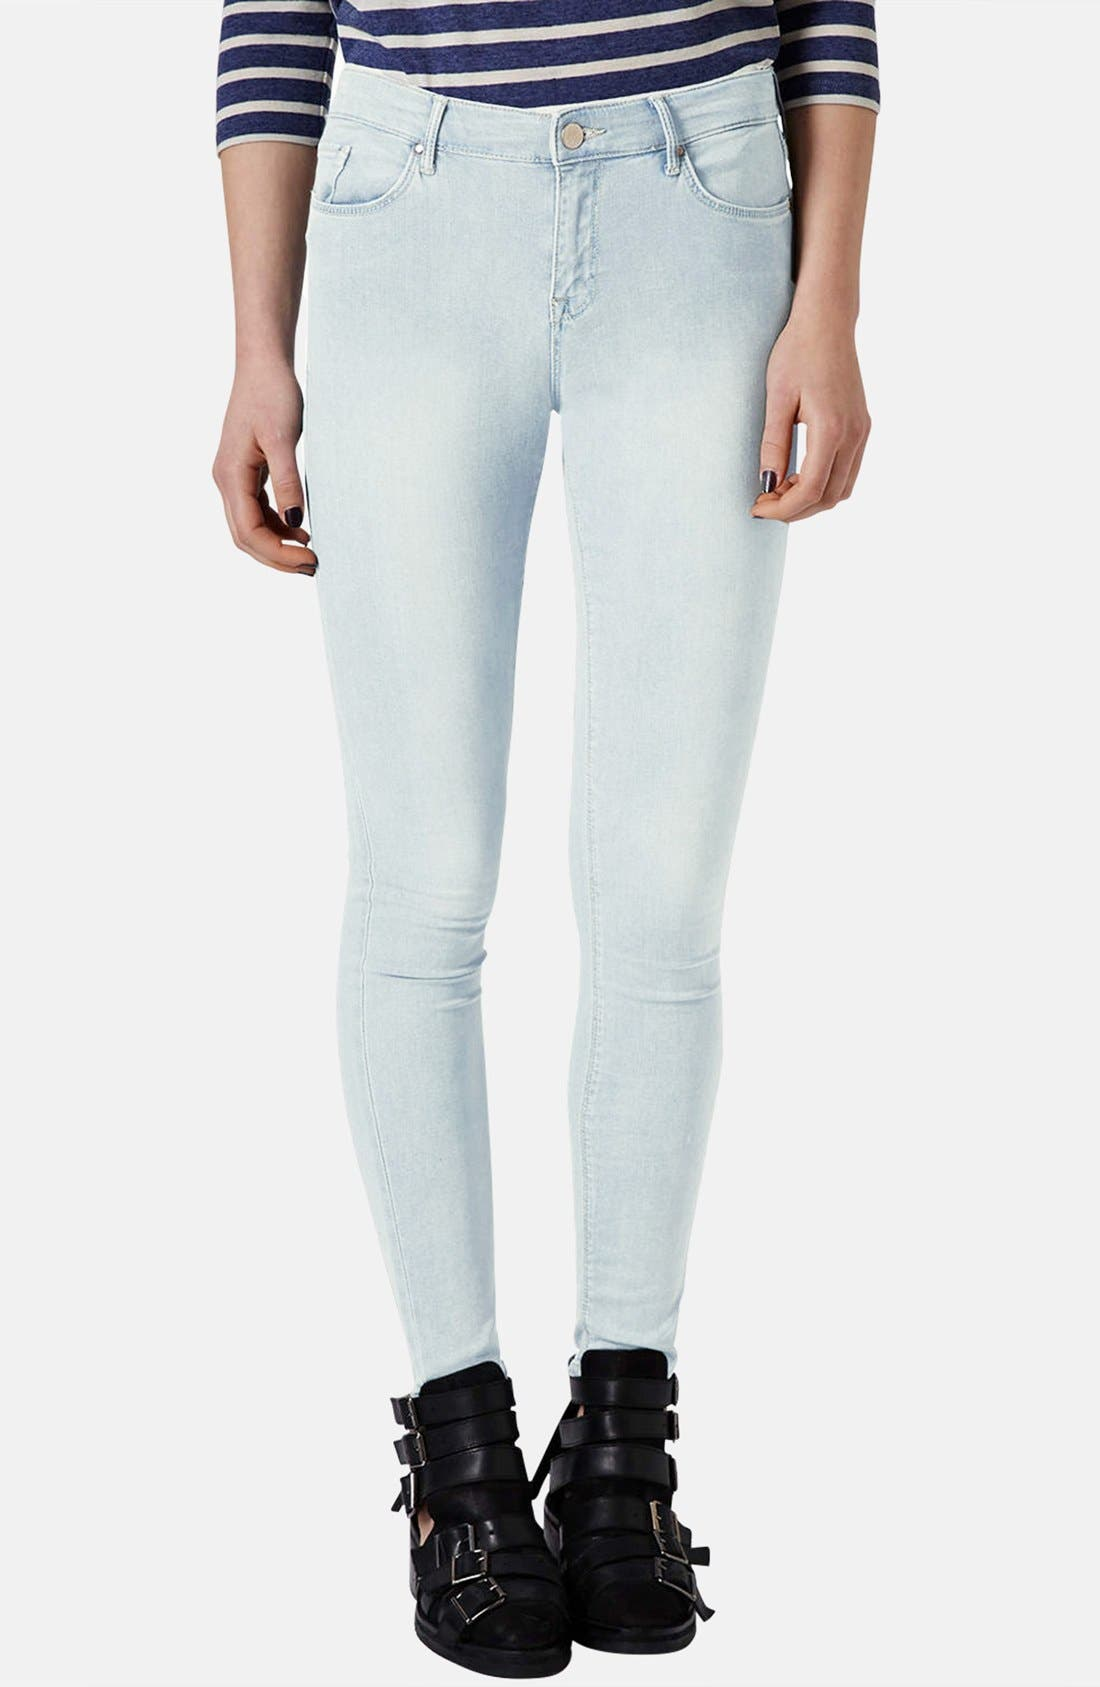 Alternate Image 1 Selected - Topshop Moto 'Leigh' Bleach Skinny Jeans (Regular & Short) (Light Denim)